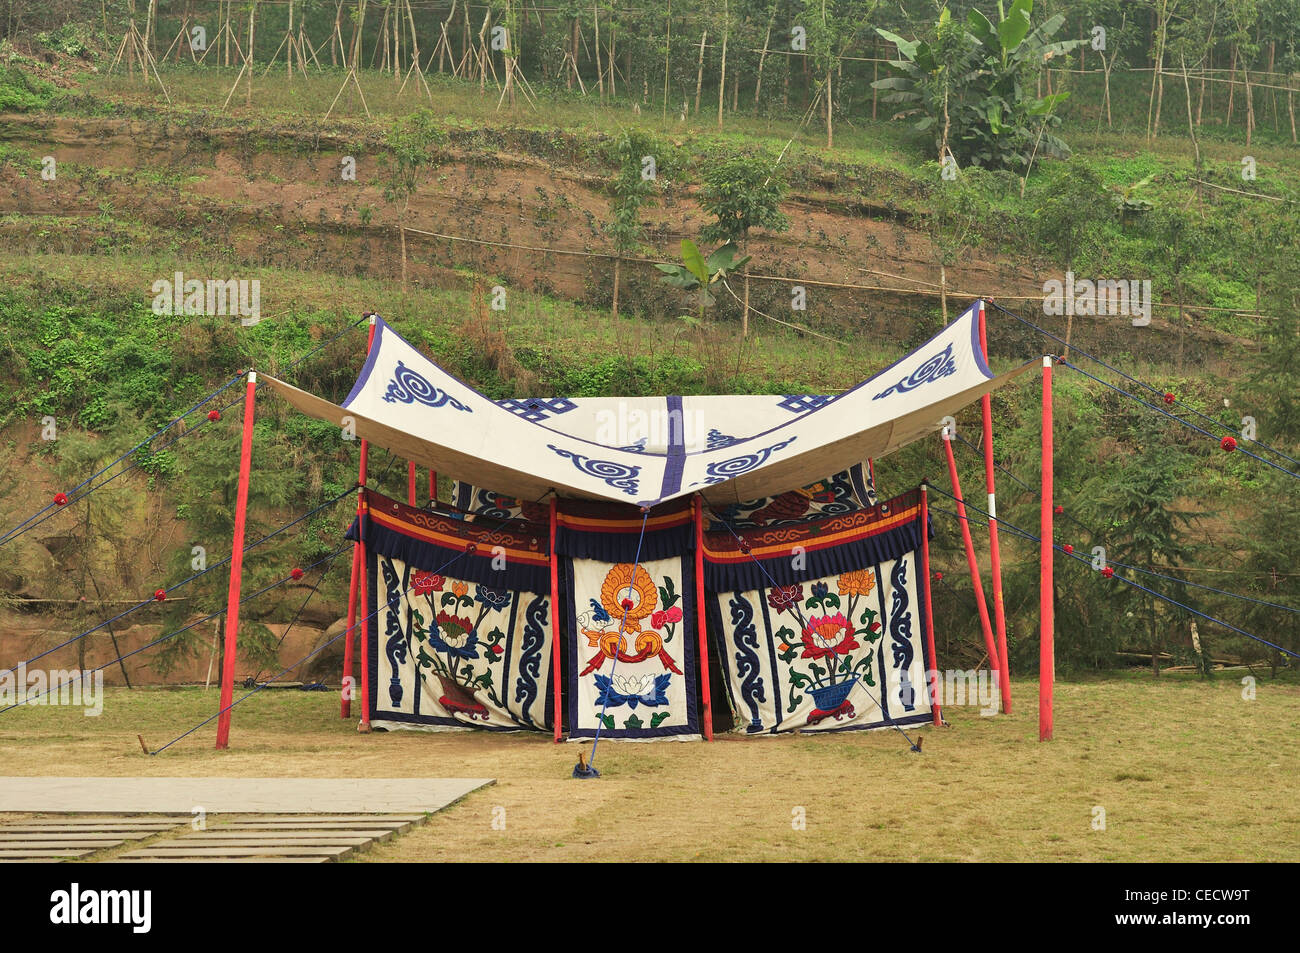 Tibetan tent & Tibetan tent Stock Photo: 43309220 - Alamy